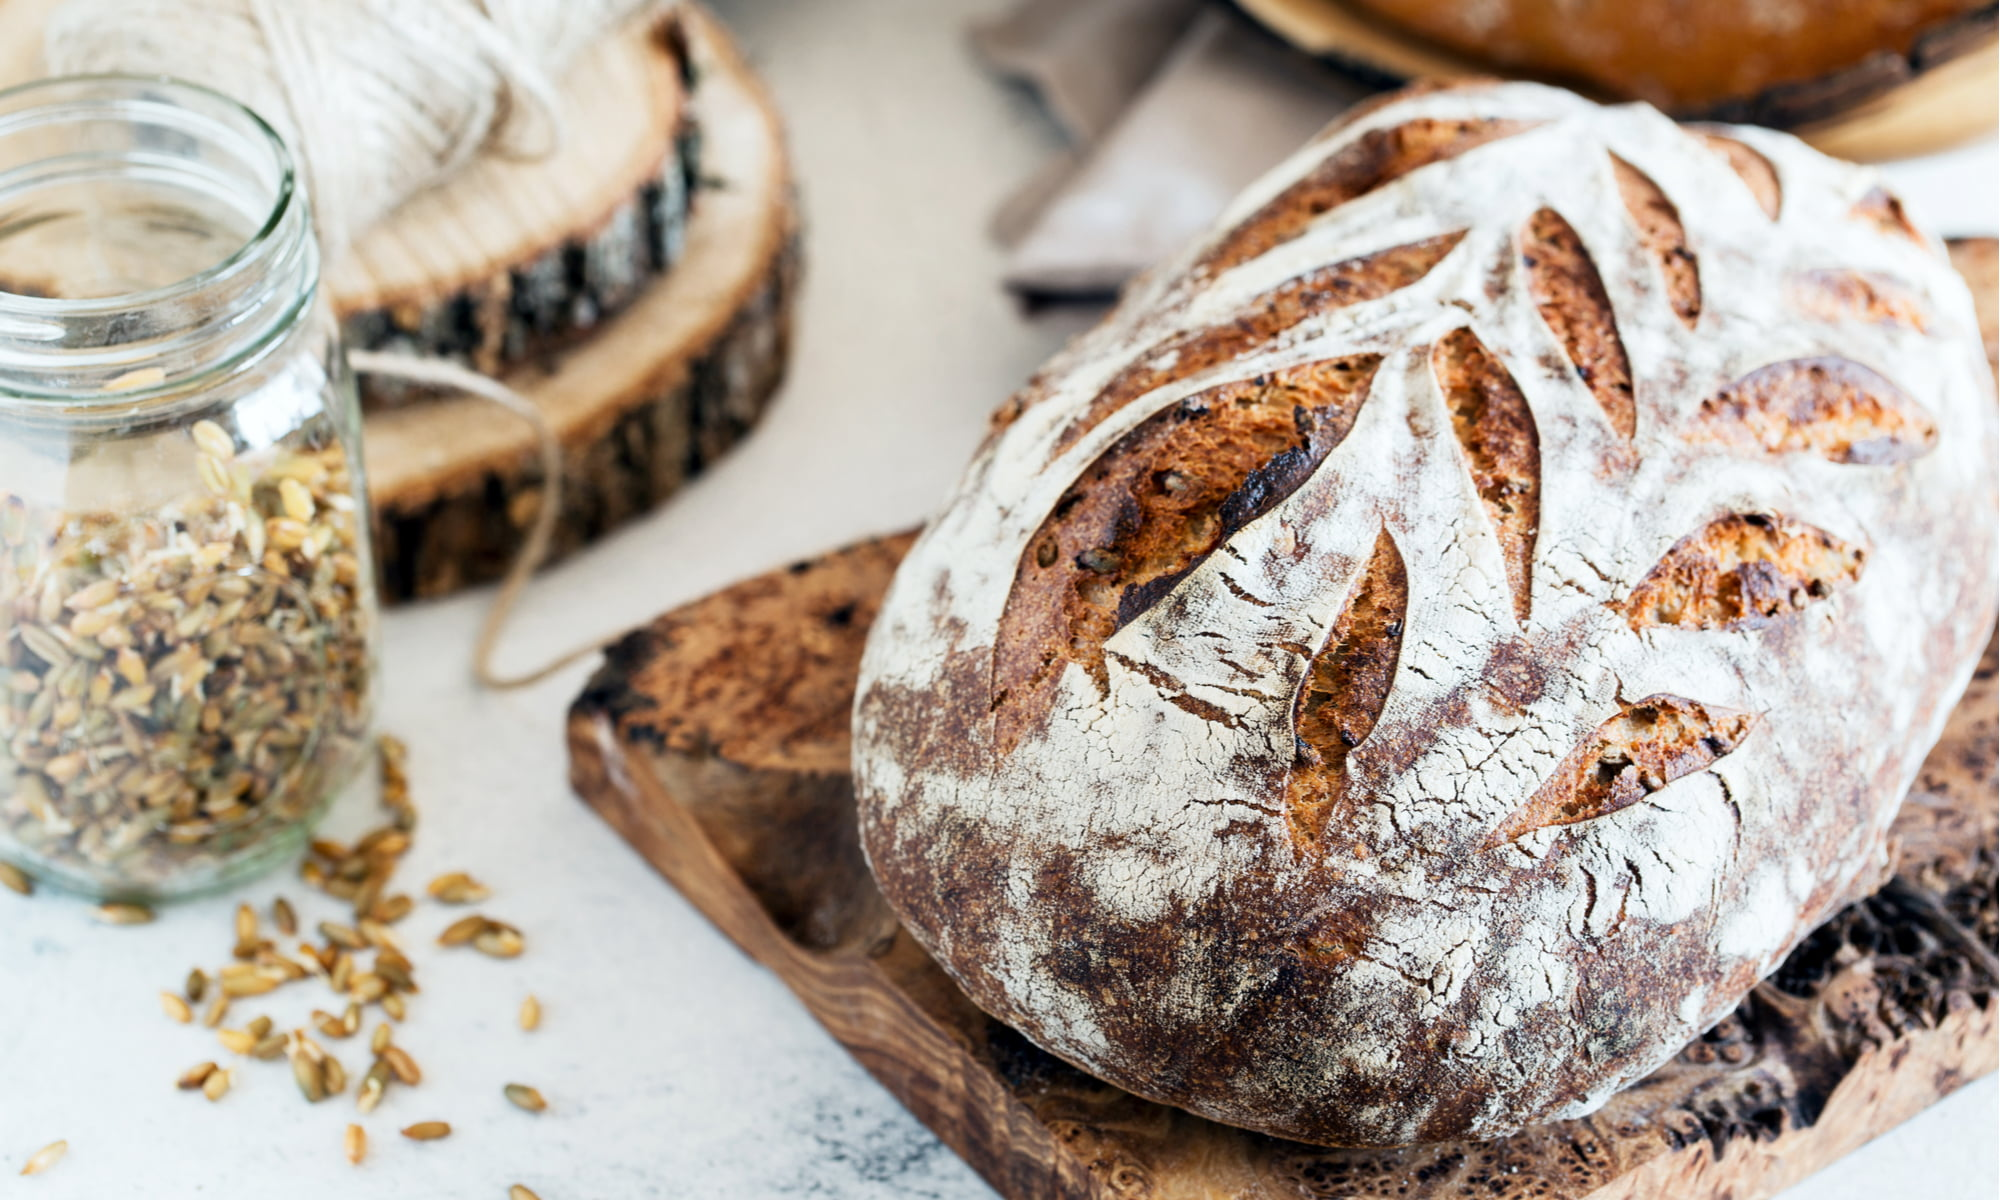 Sprouted Grain Breads: Are They Healthier?